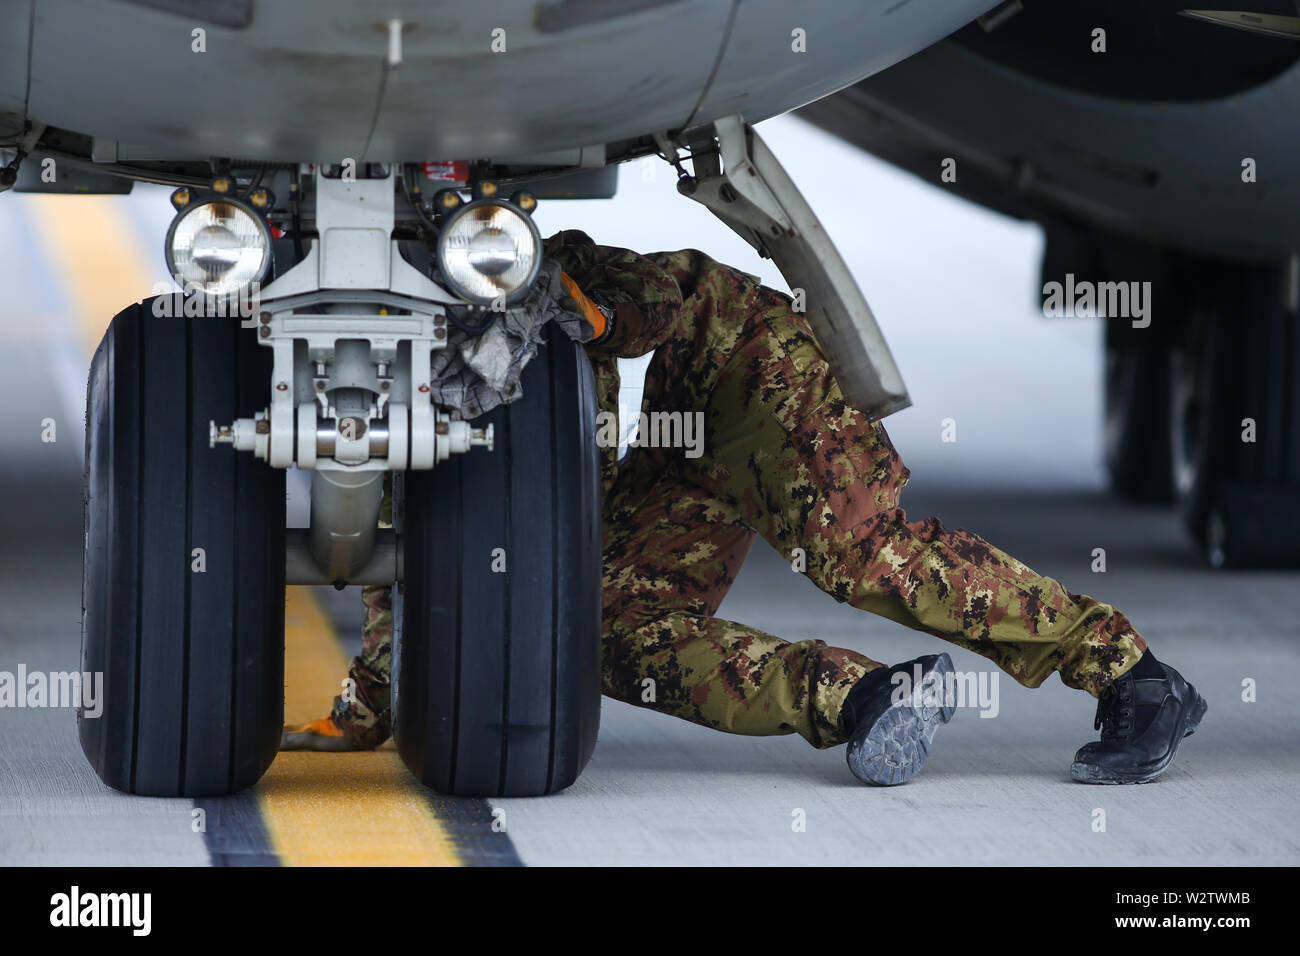 Otopeni, Romania - May 22, 2019: A mechanic is inspecting parts of an Alenia C-27J Spartan military cargo plane after landing on an airbase. - Stock Image